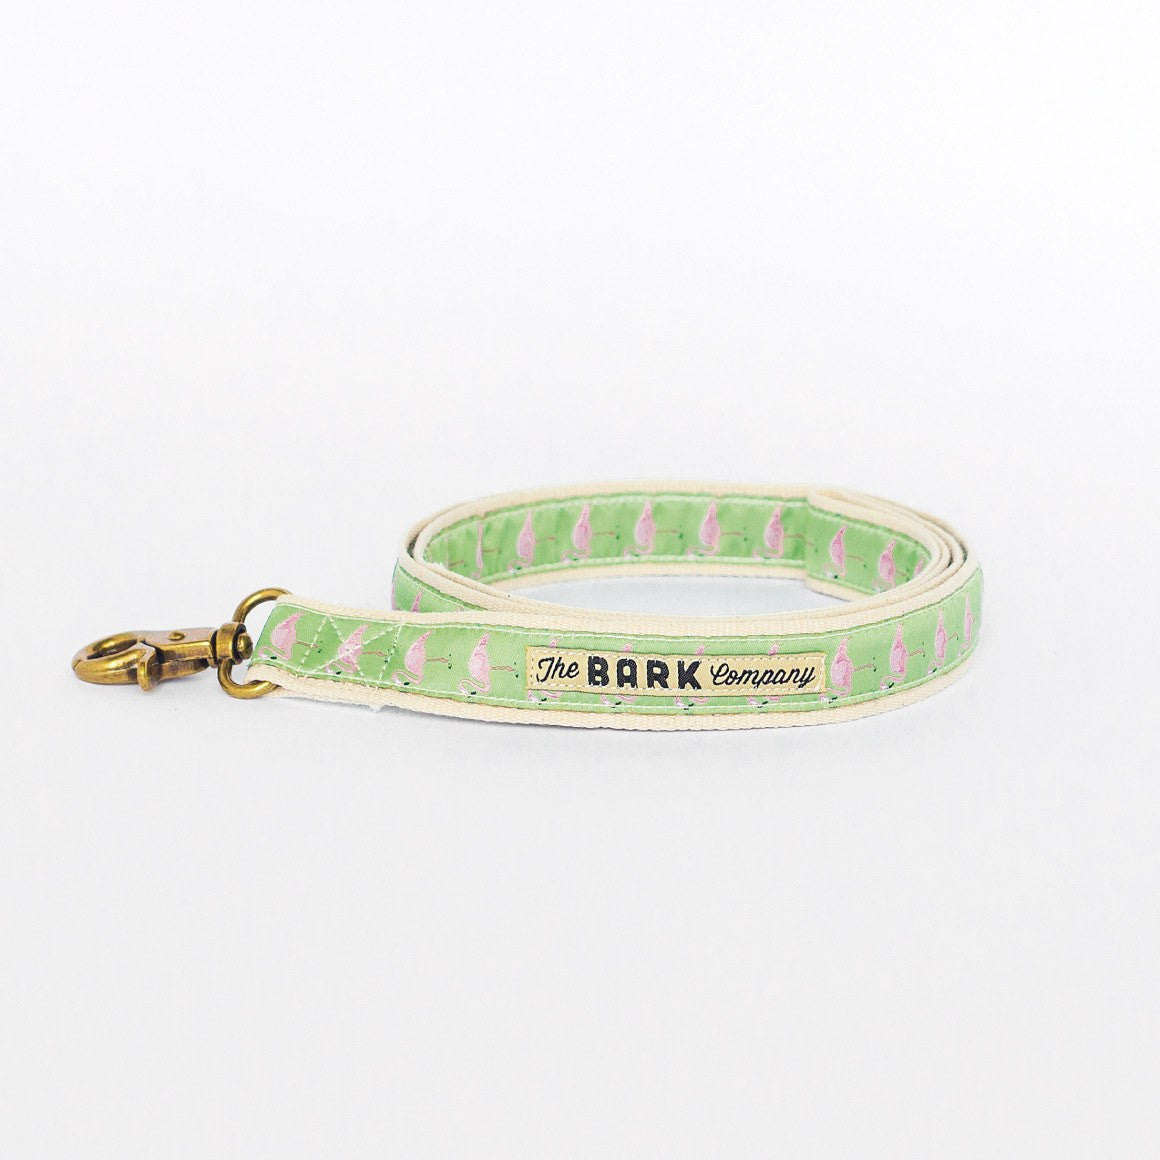 Flamingos dog leash from The Bark Co - 1